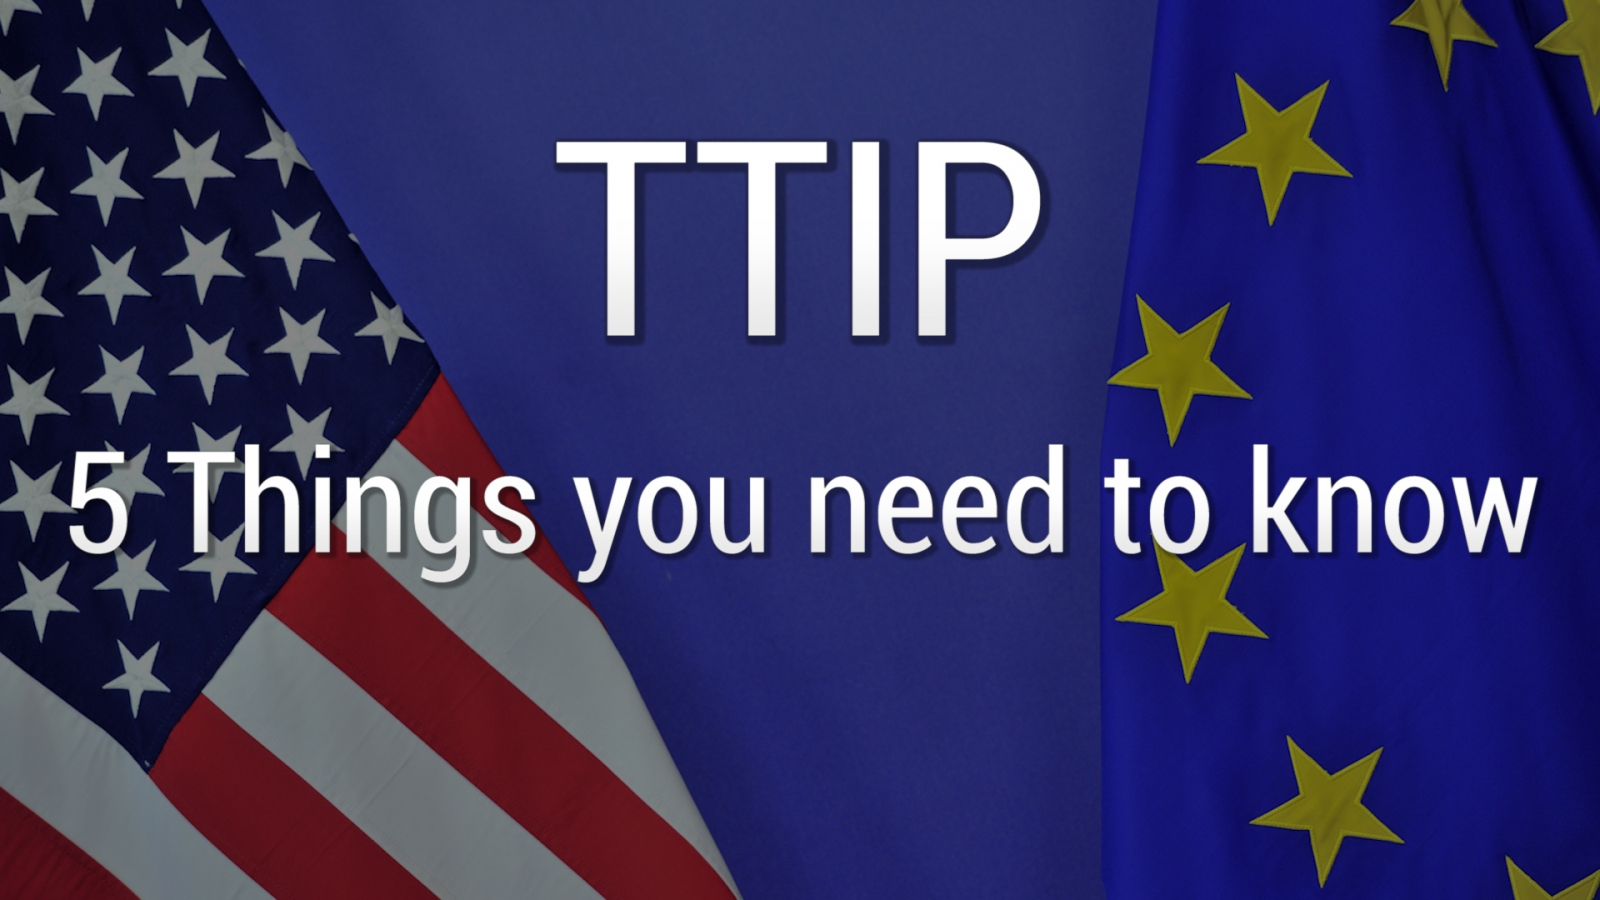 TTIP What you need to know